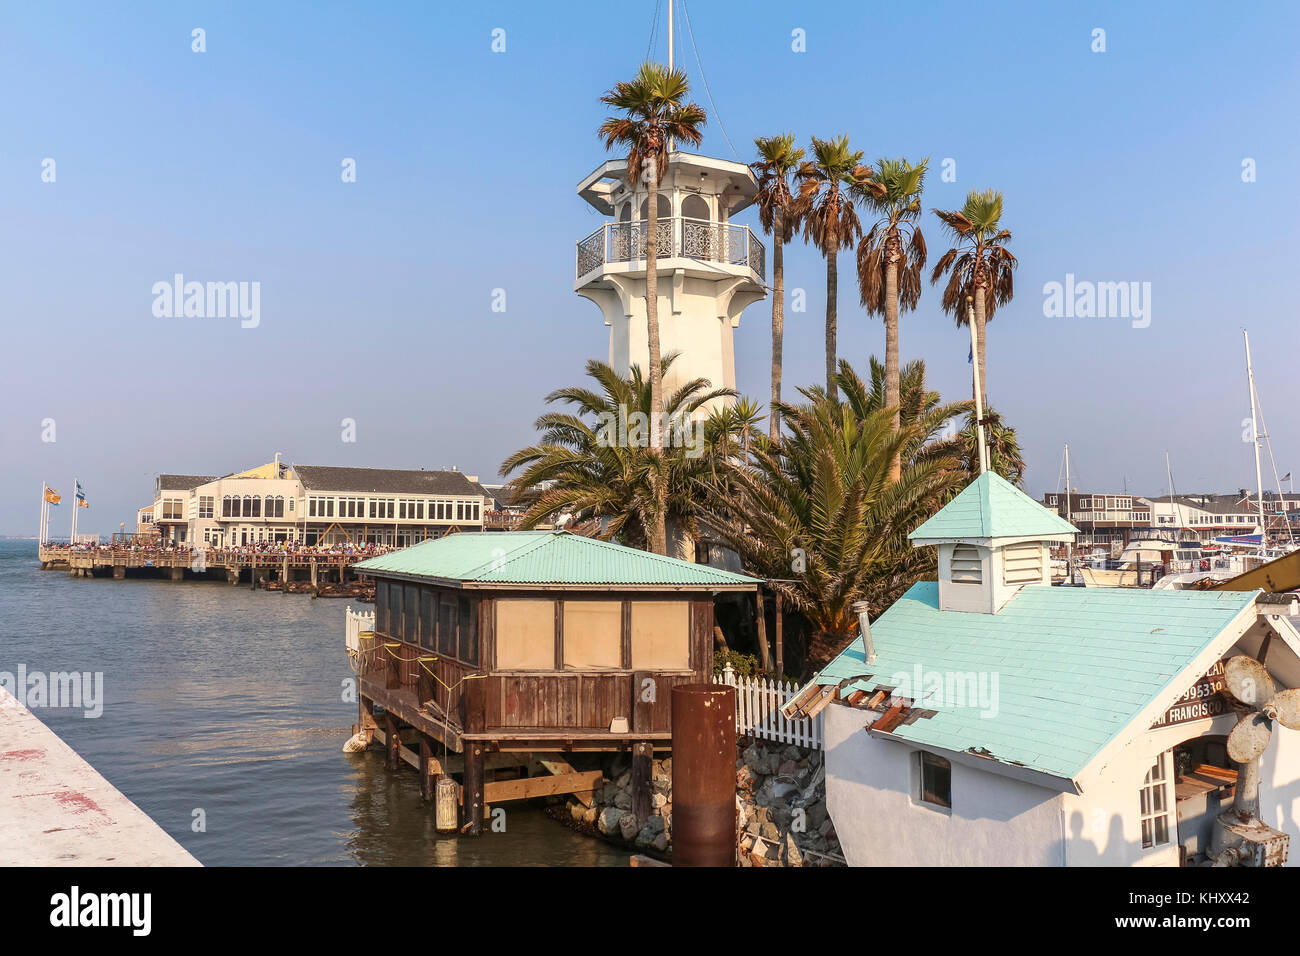 Pier 39 lighthouse view in San Francisco daytime - Stock Image